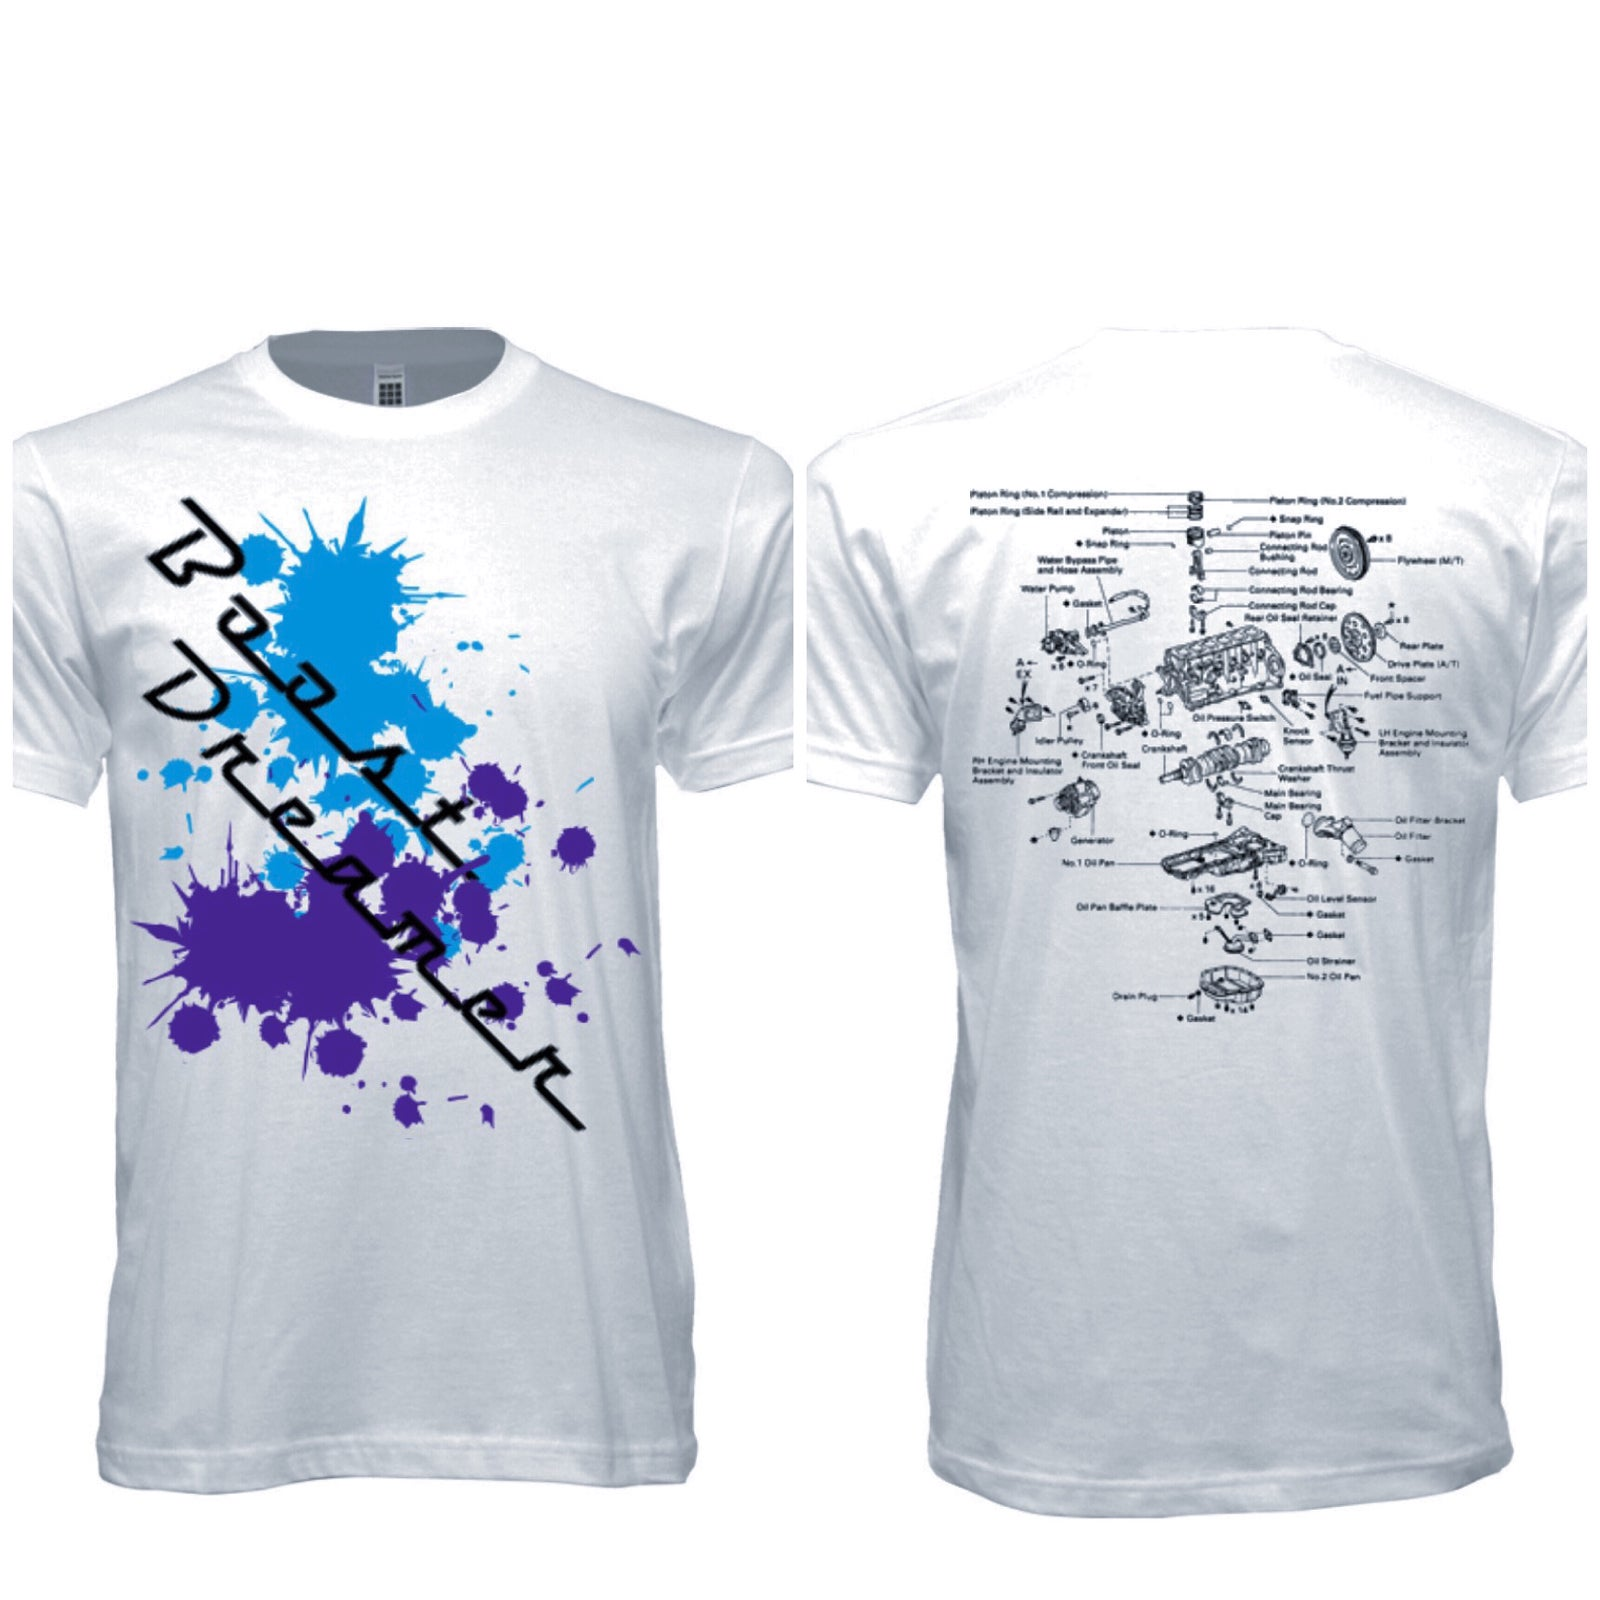 small resolution of image of boost dreamer 2jz diagram t shirt